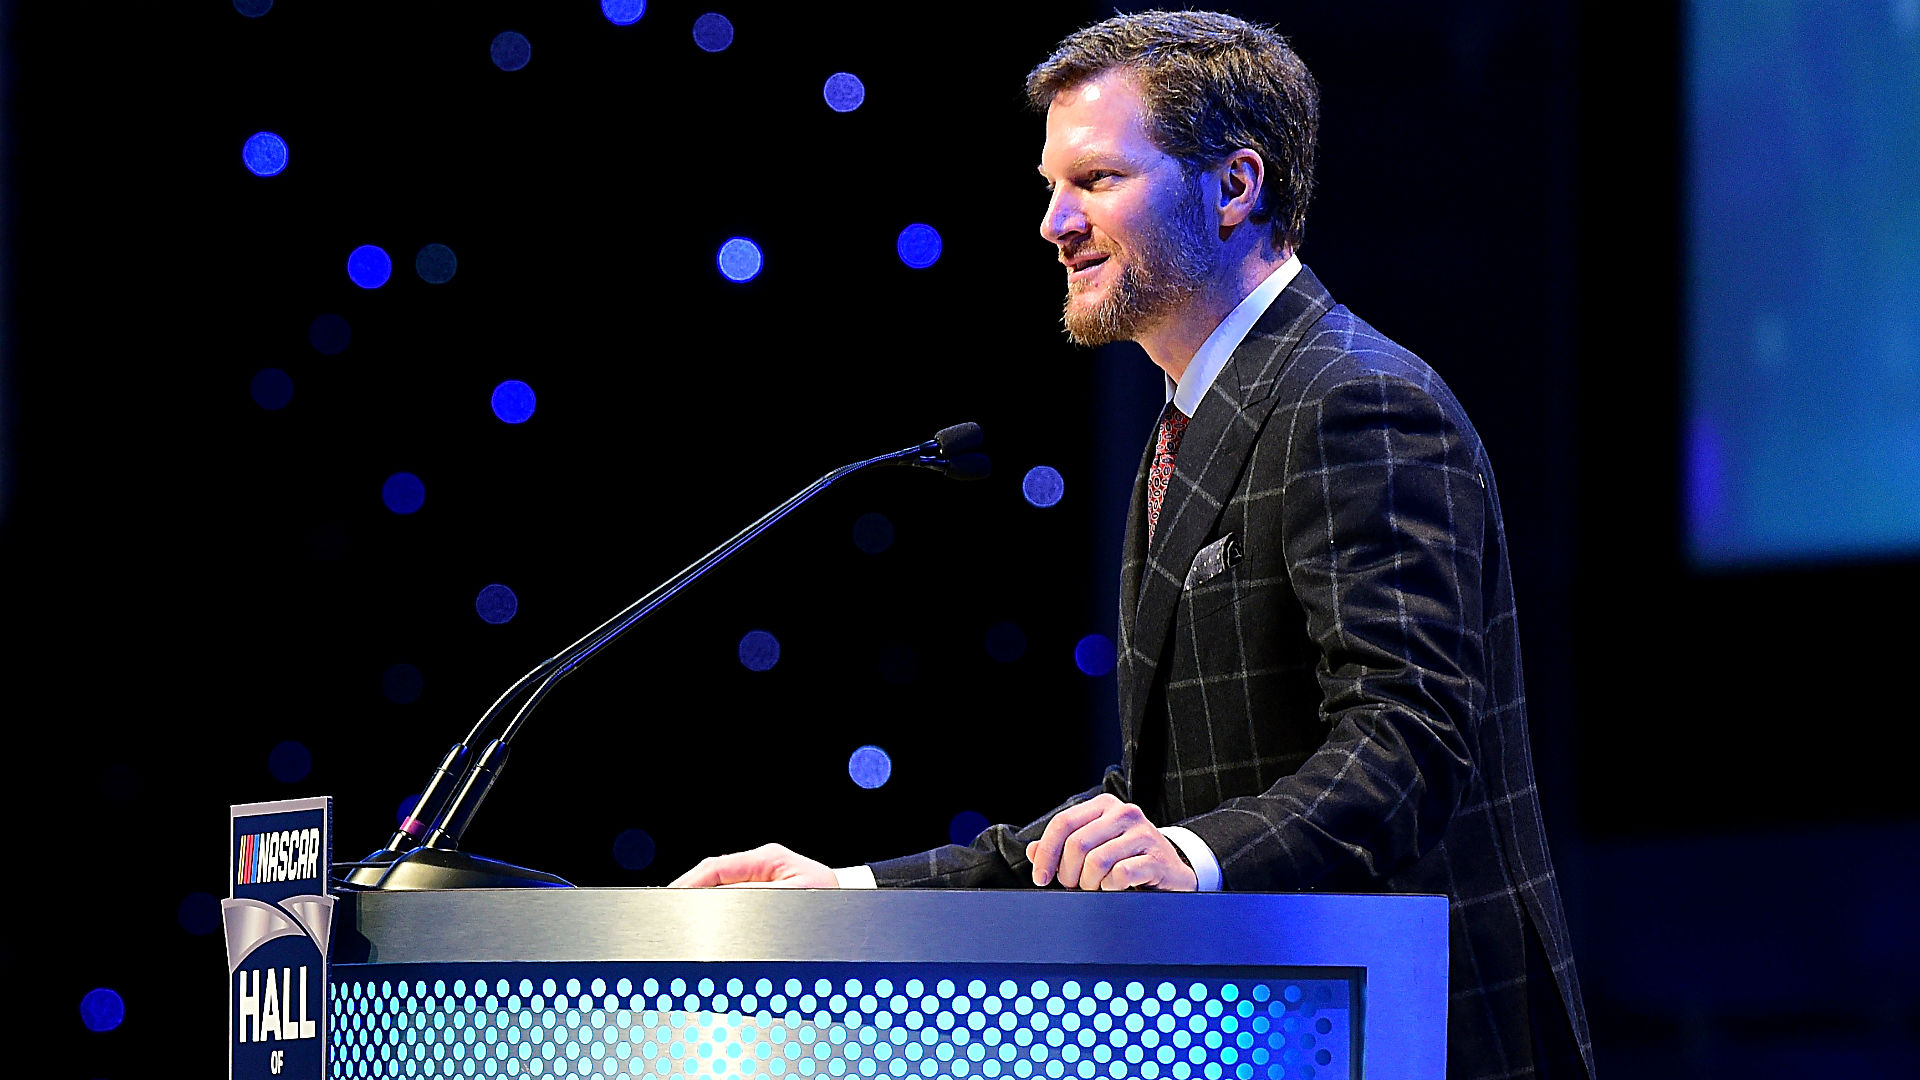 Dale Earnhardt Jr. leads NASCAR Hall of Fame Class of 2021